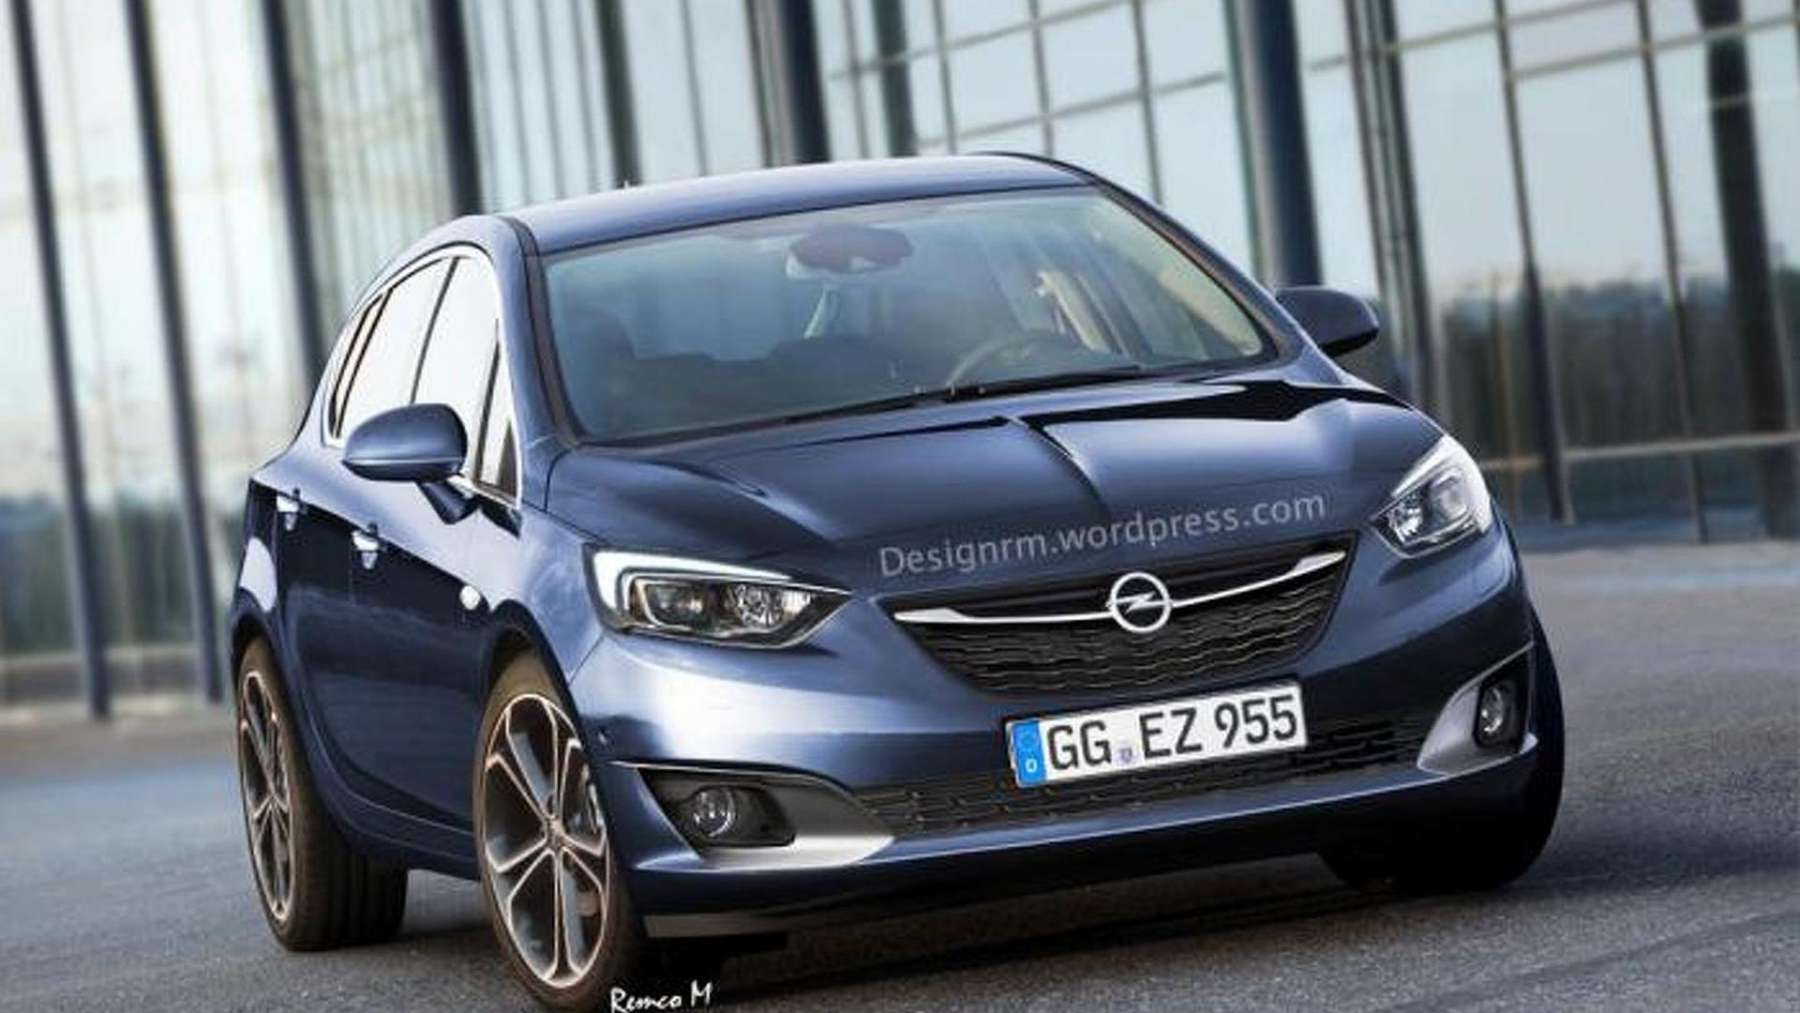 Opel Astra wallpapers, specs and news - AllCarModels.net